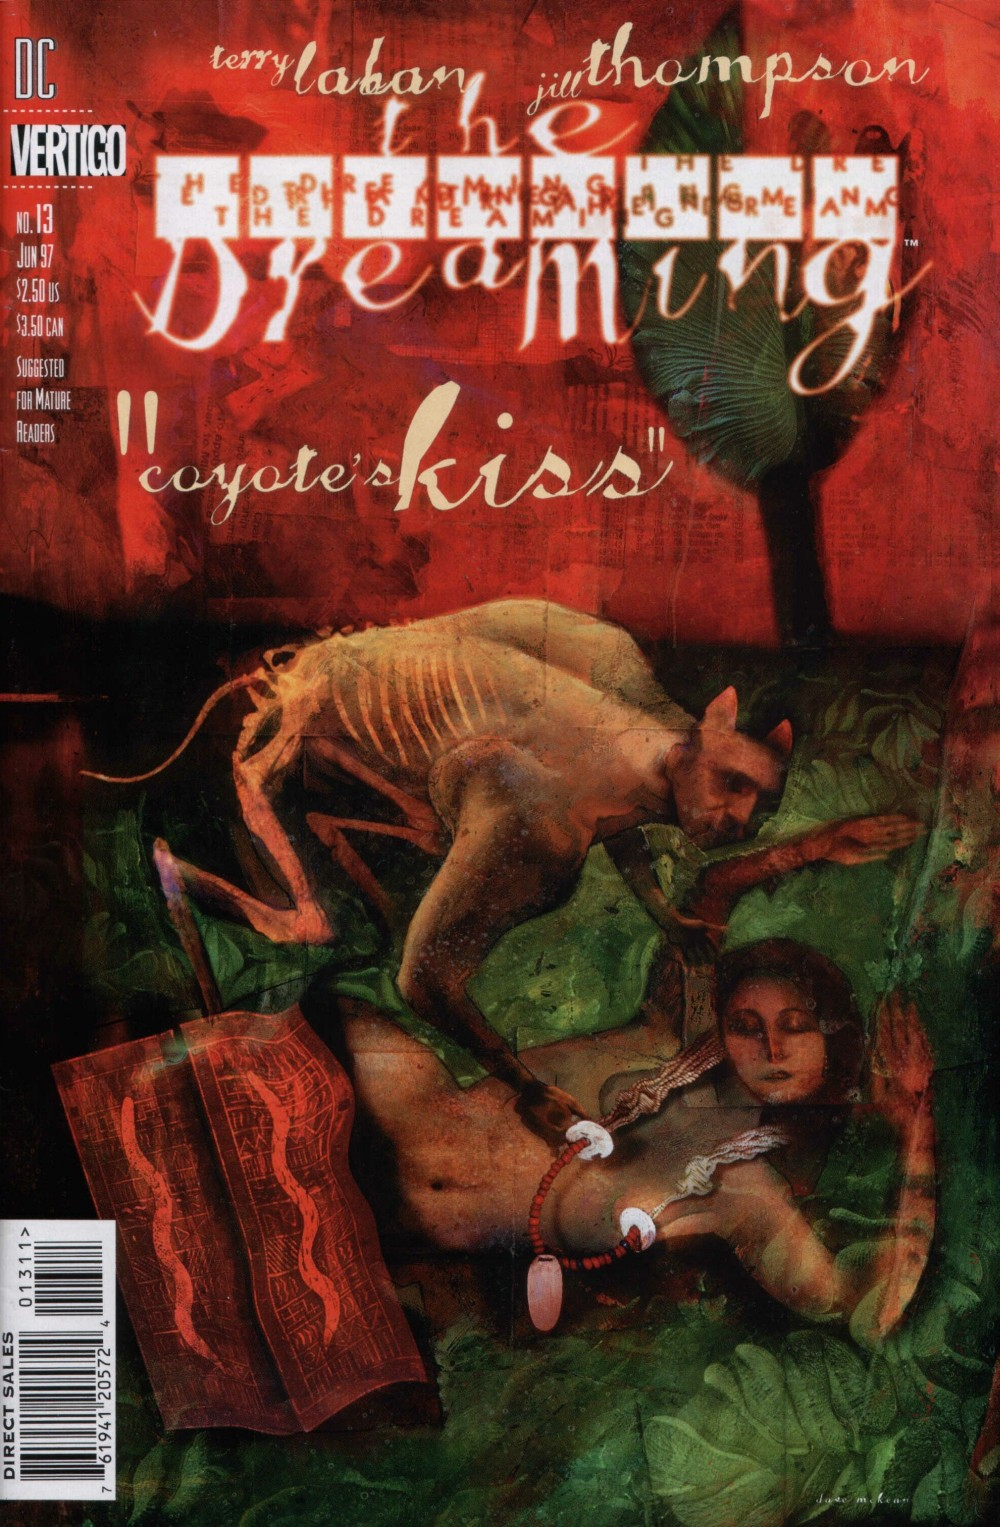 Dreaming, The [DC Vertigo] V1 0013.jpg